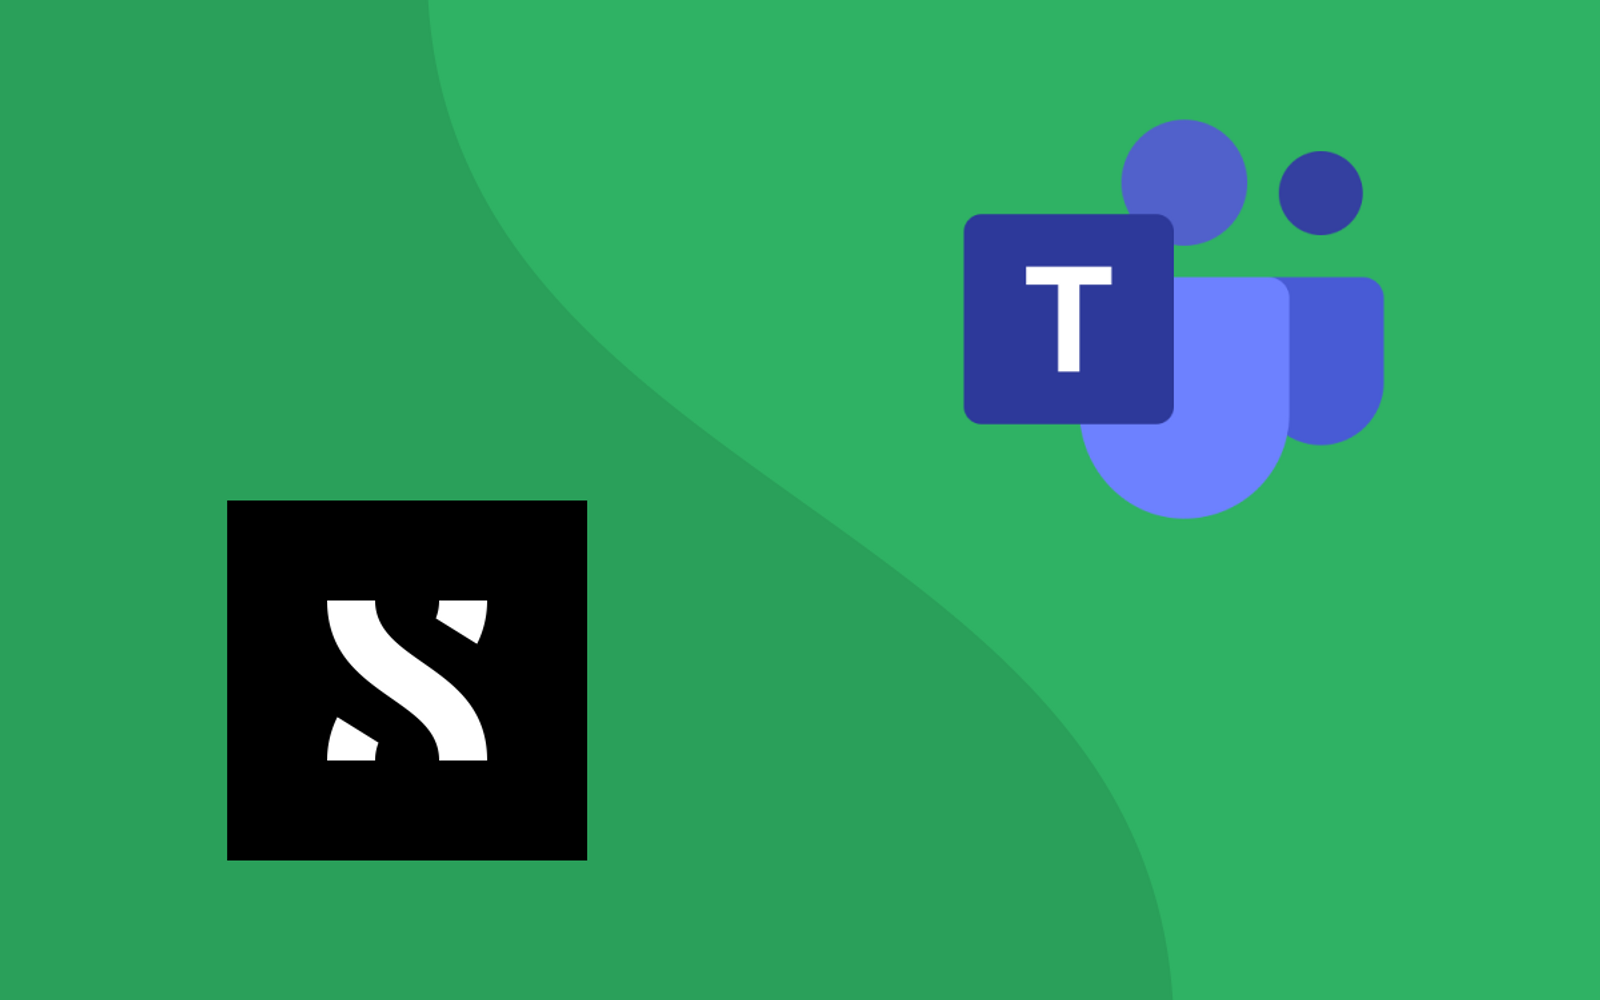 Logos of ShiftX and Microsoft Teams on a green background